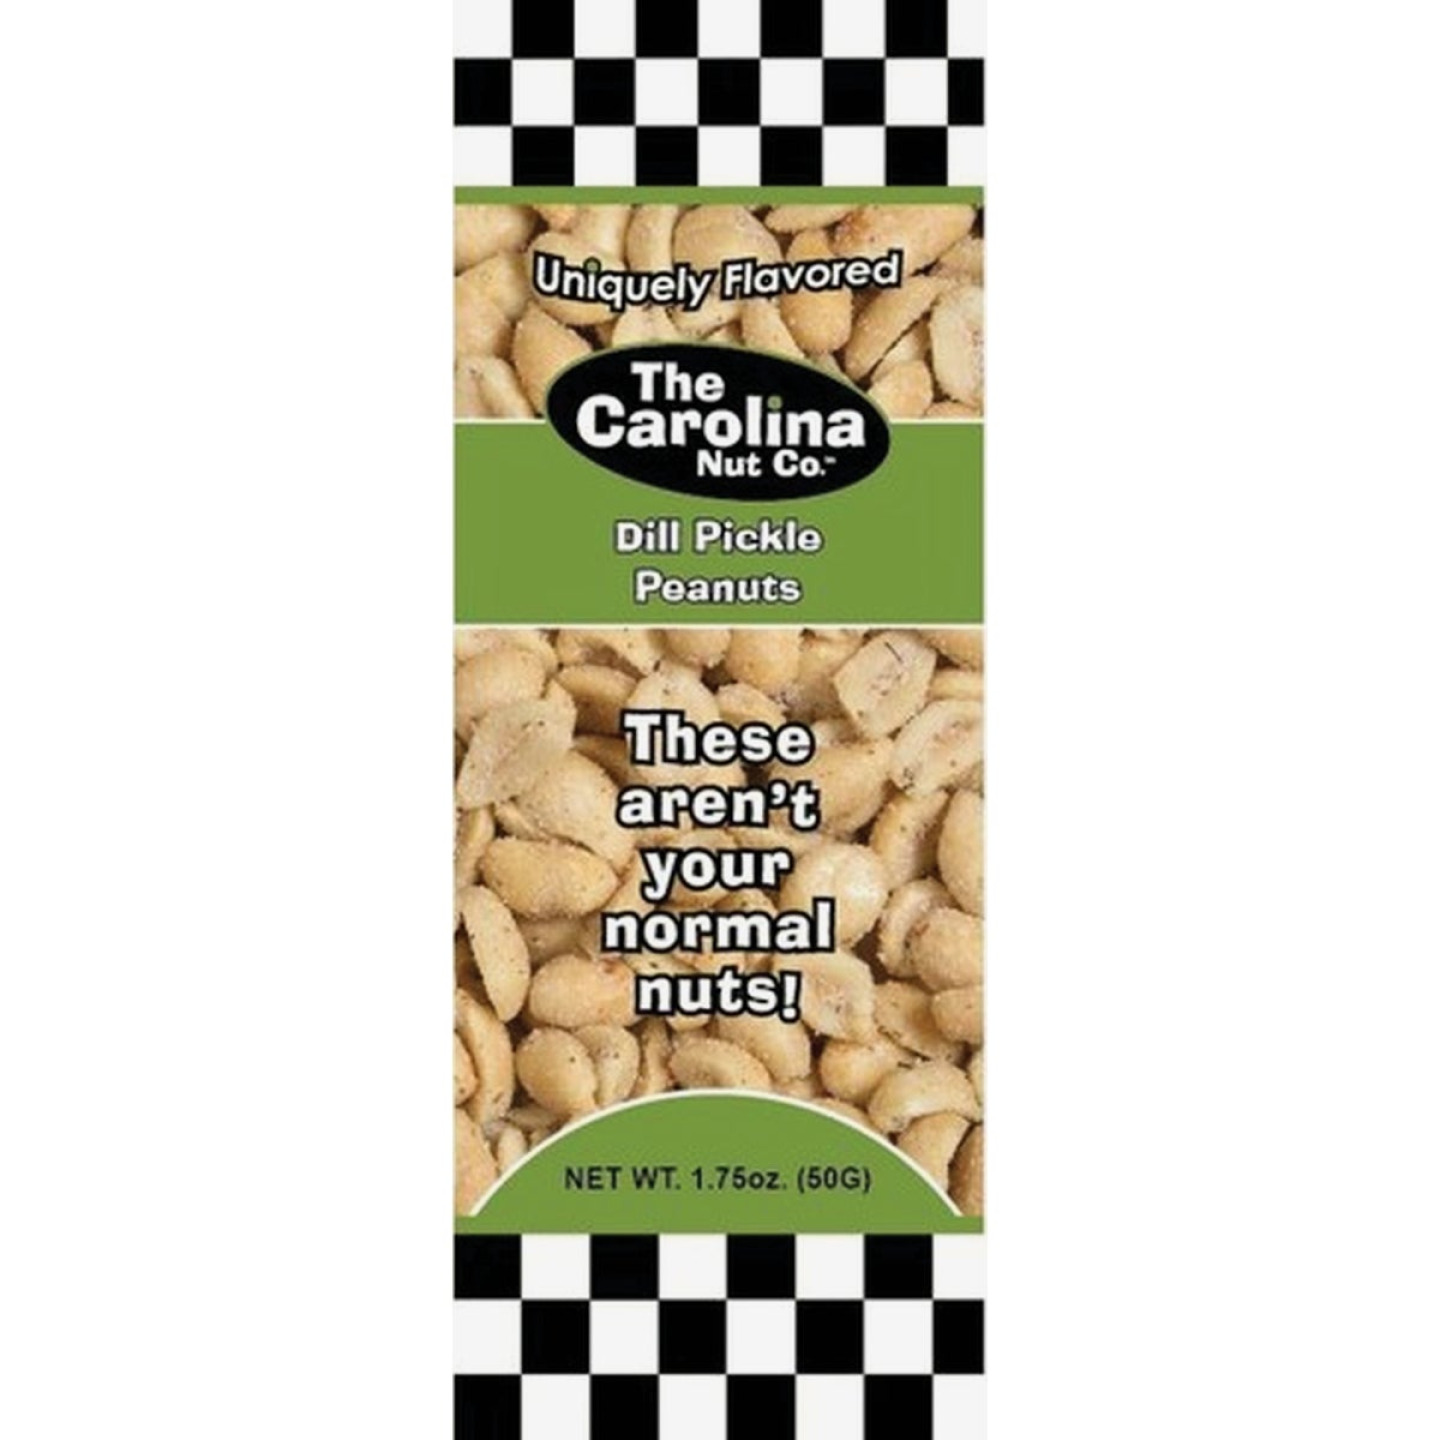 The Carolina Nut Company 1.75 Oz. Dill Pickle Peanuts Image 1